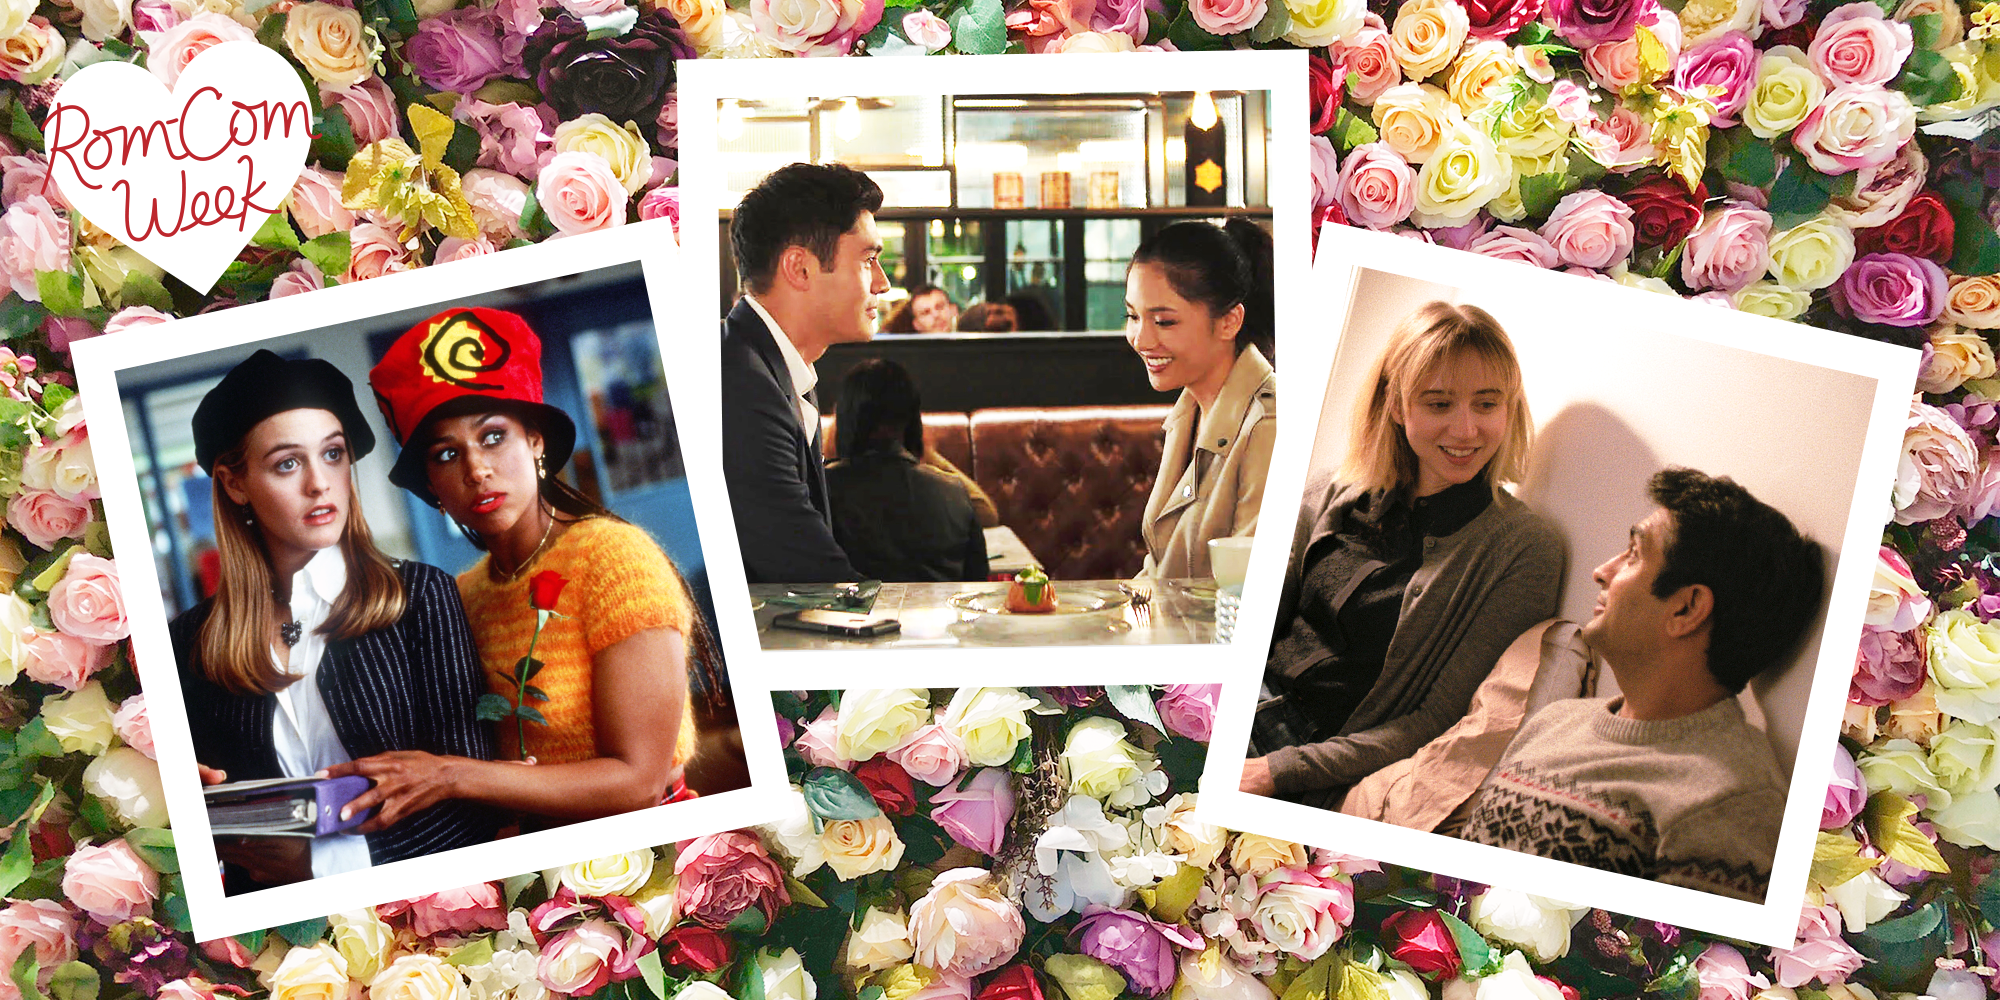 The 65 Best Rom-Coms of All Time, Ranked